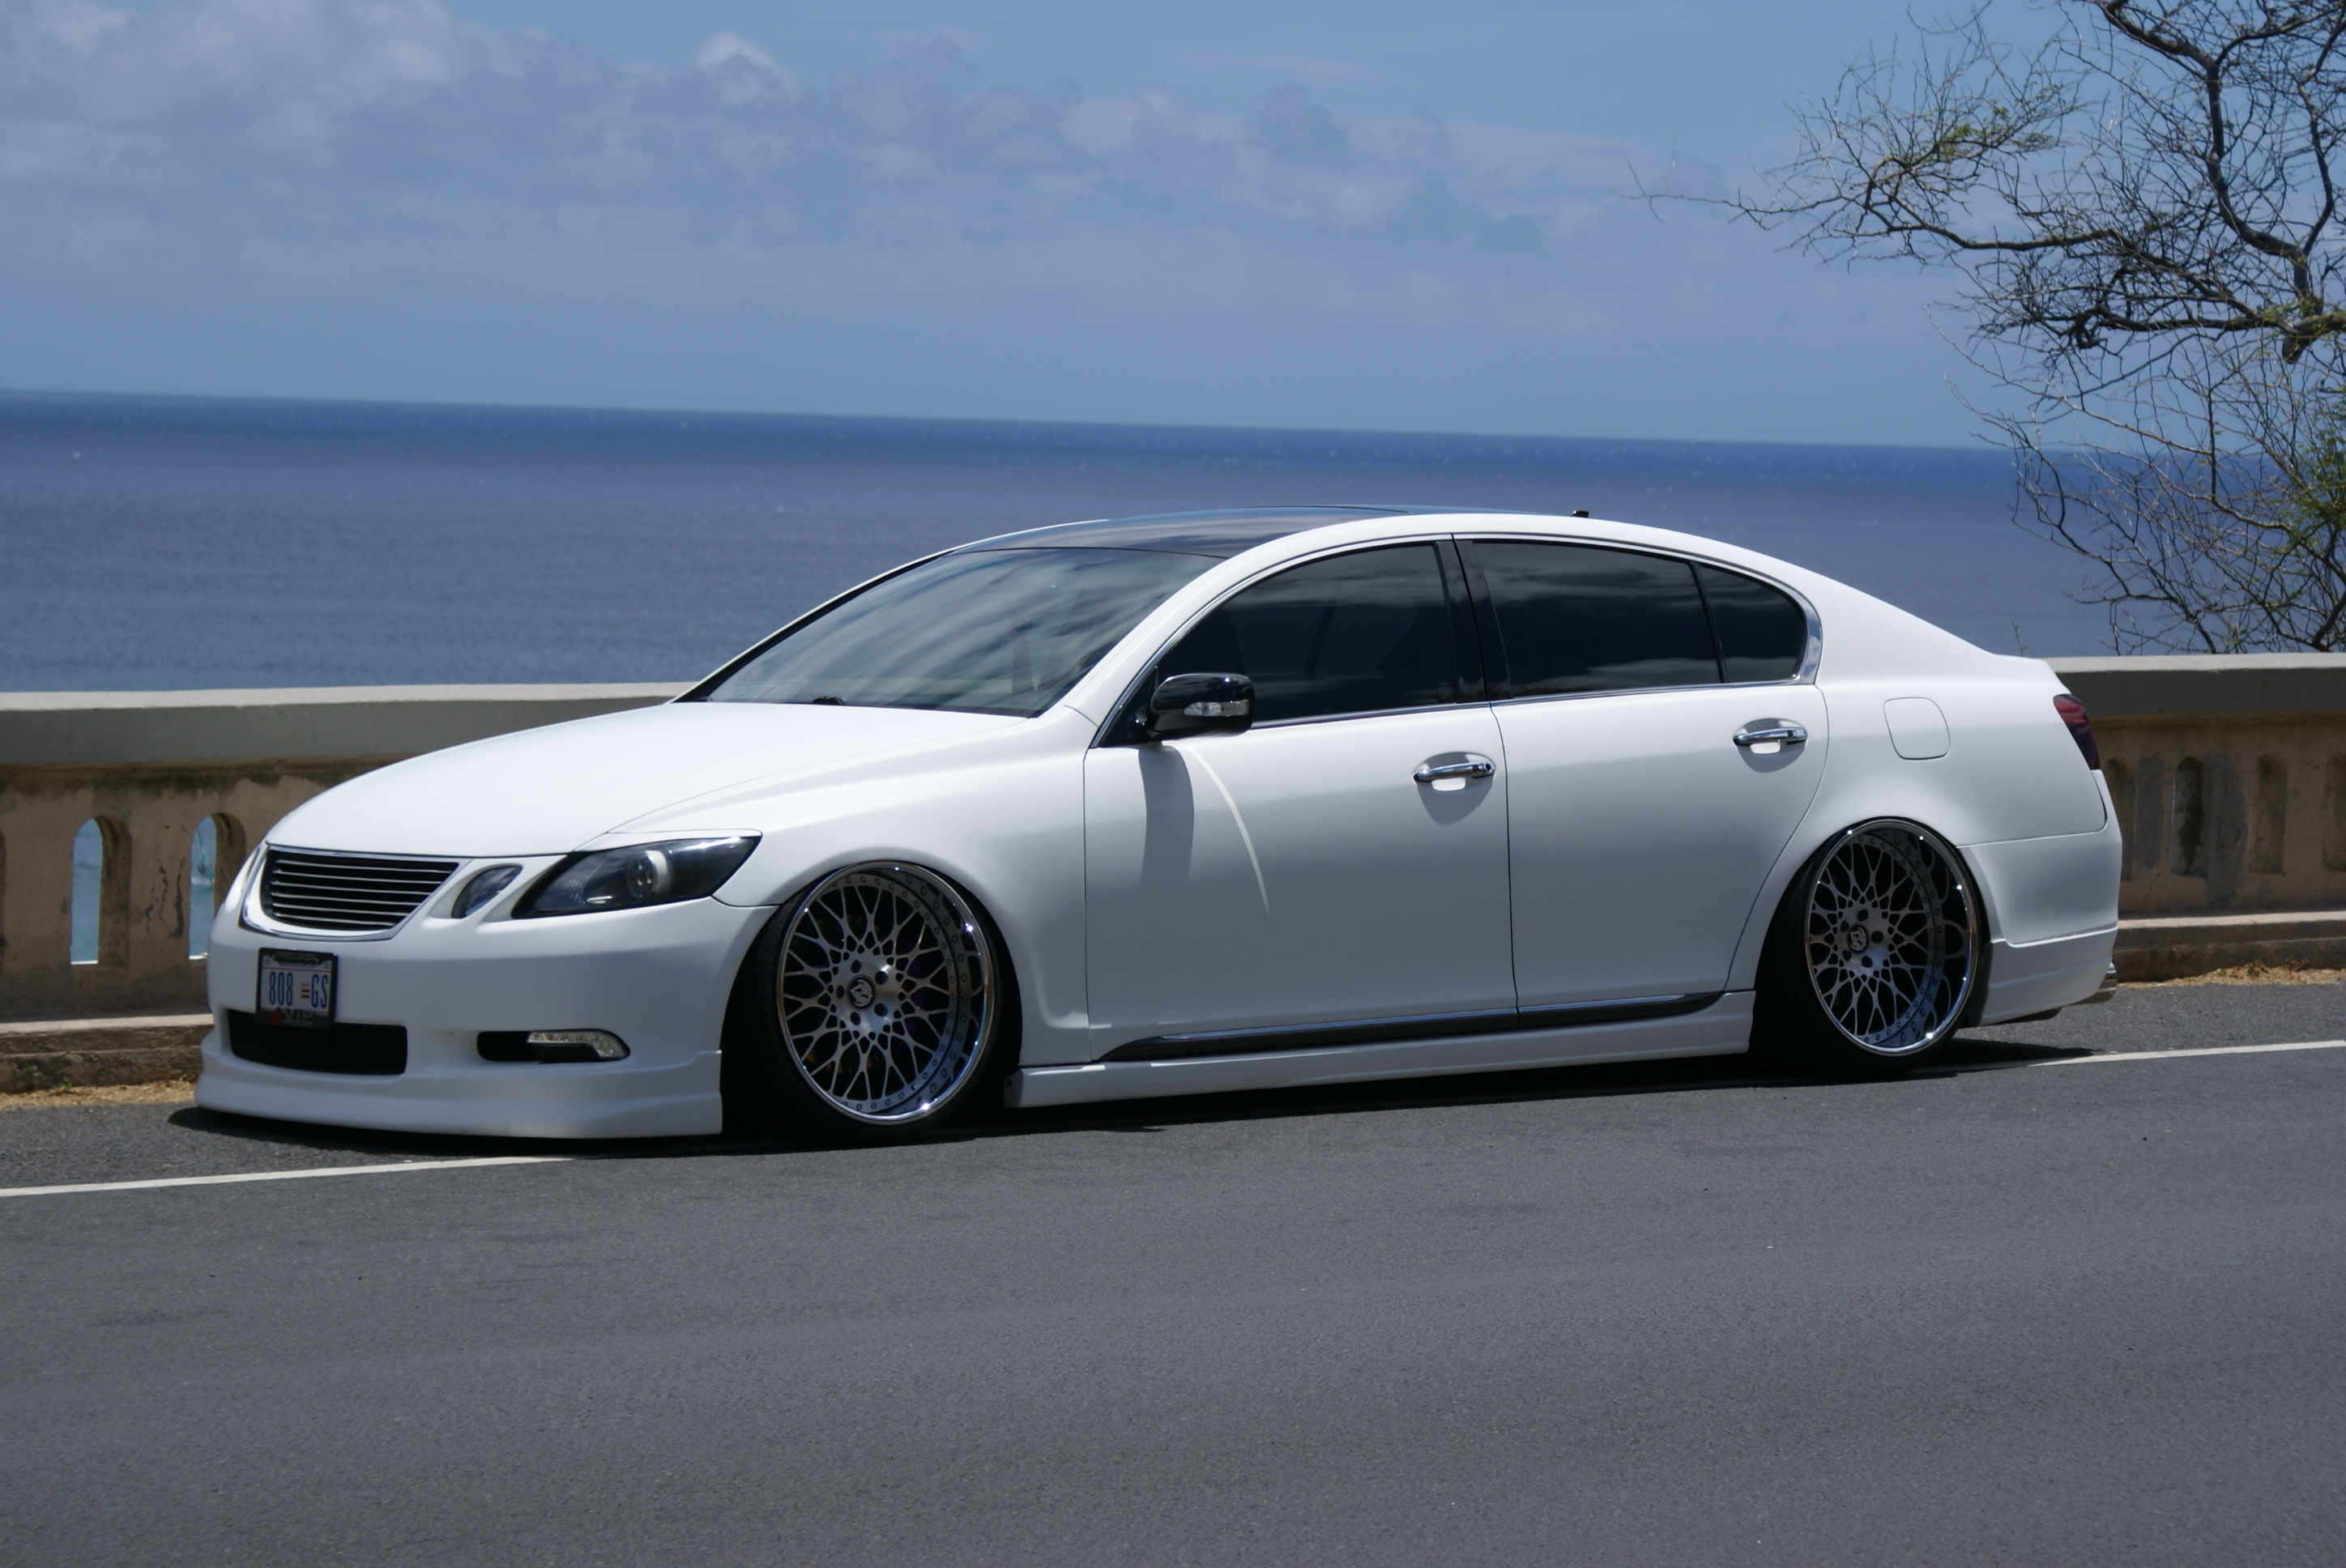 news in nrm lexus detroit debut future new preview gs hp f edit gets will cars